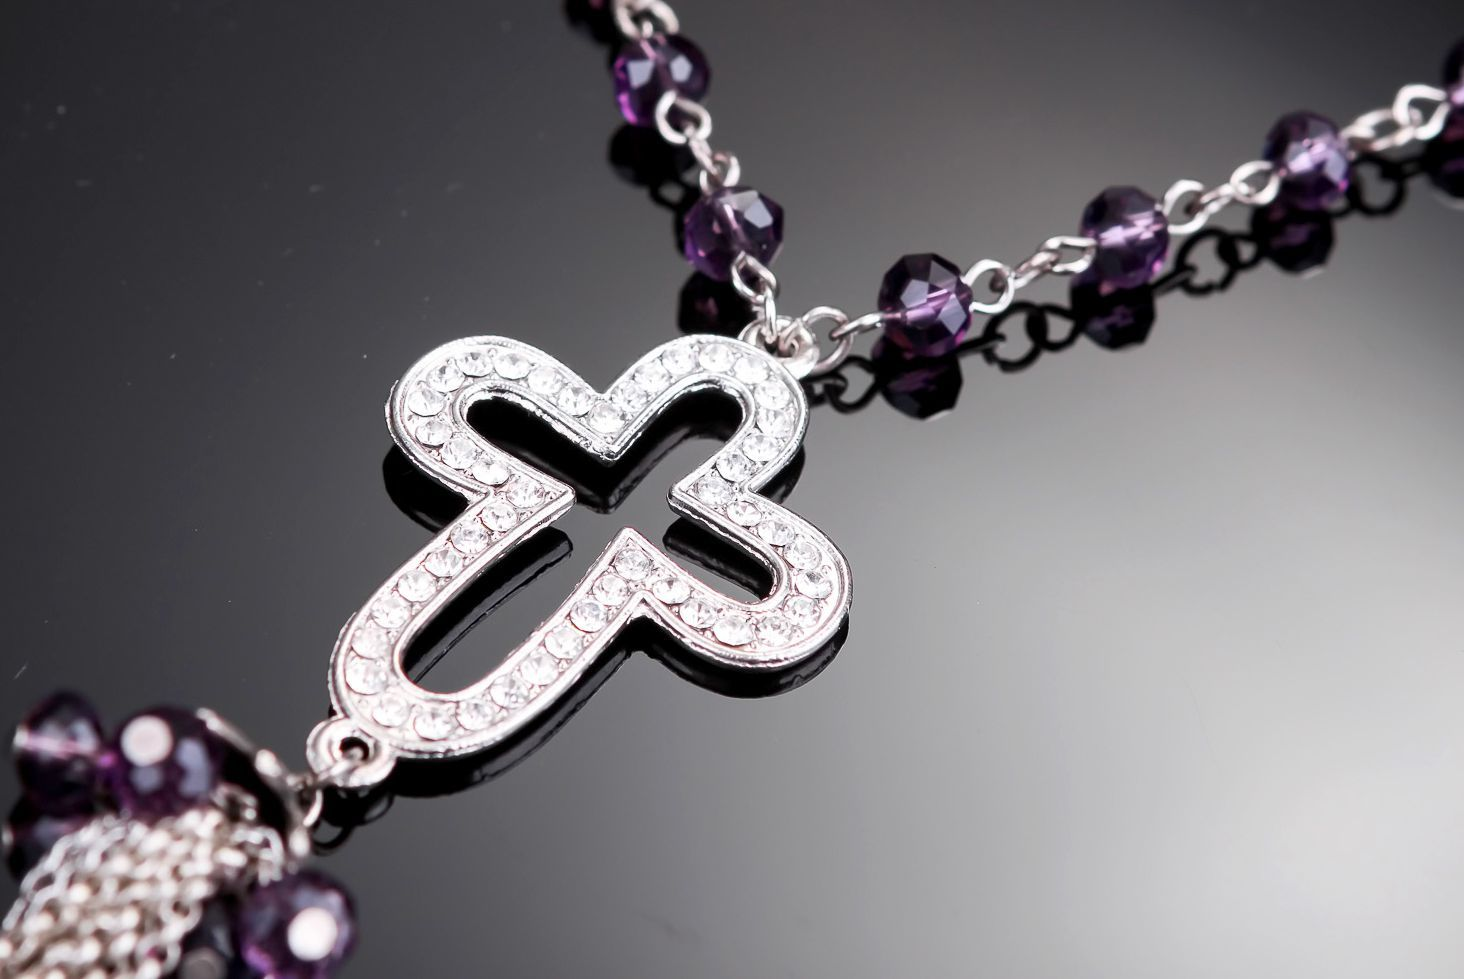 rosary beads Necklace with cross and pendant - MADEheart.com